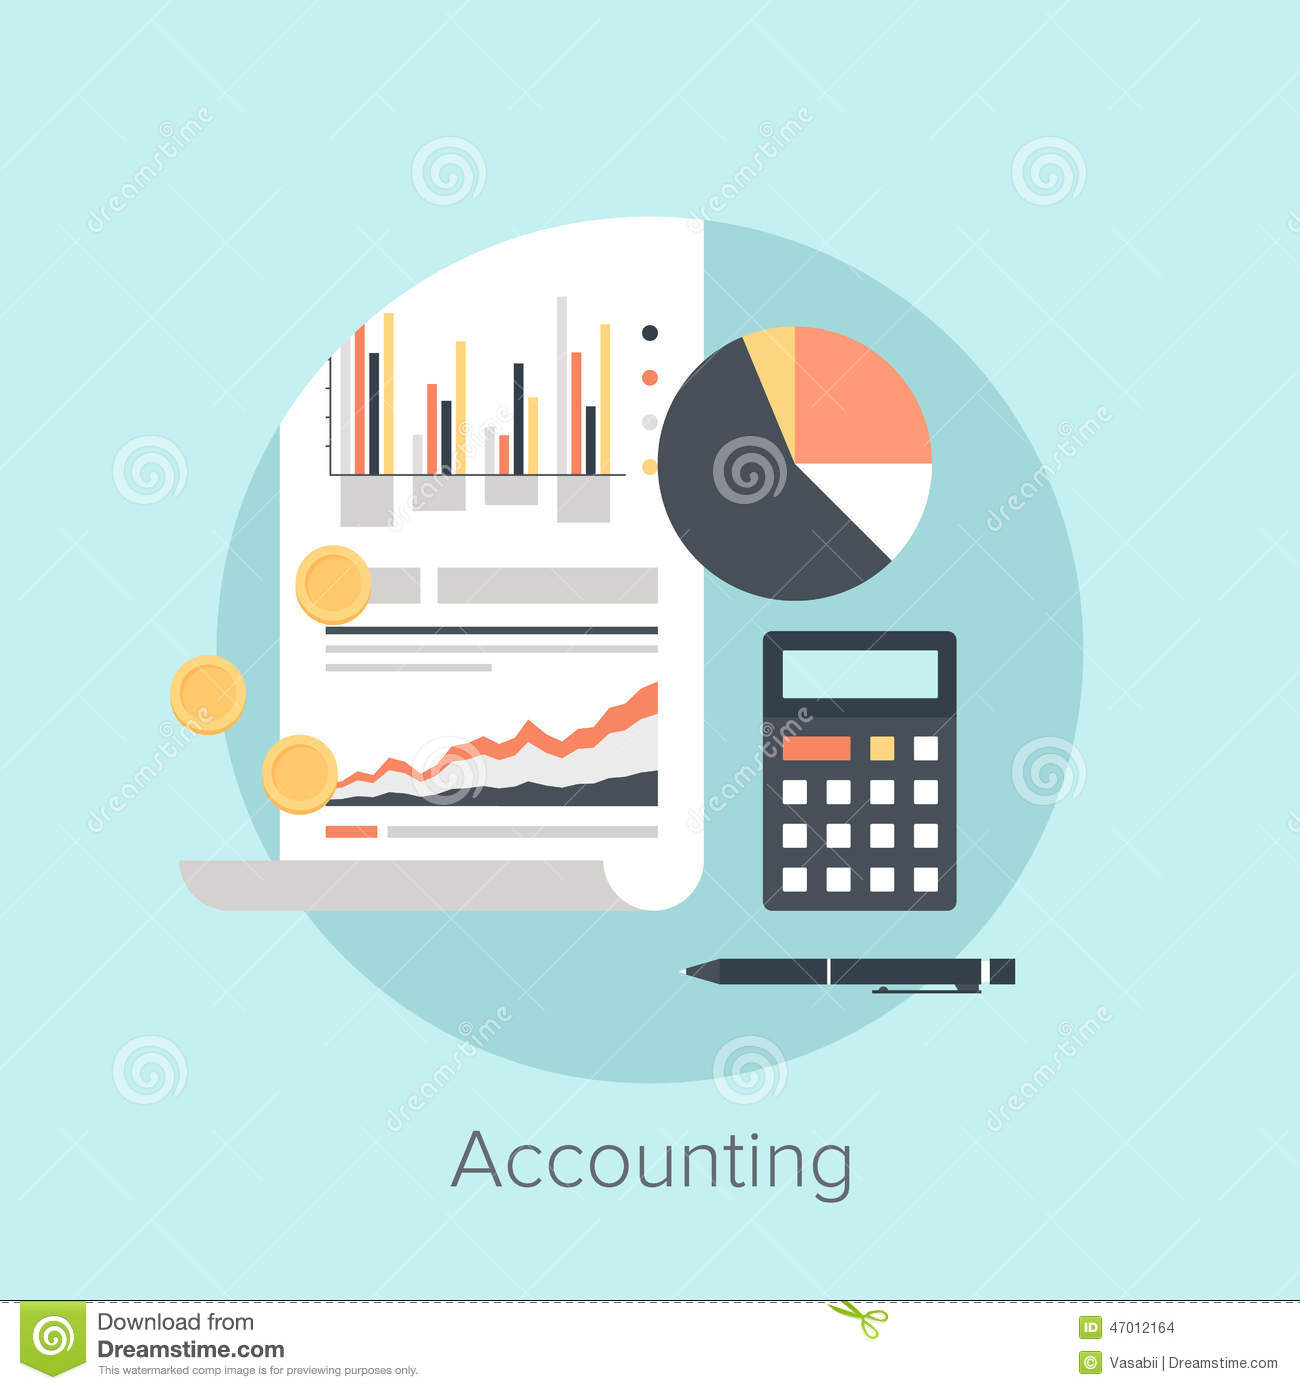 Business Plan Financial Calculatorprojected Balance Sheet Accounting Stock Photo Image 47012164